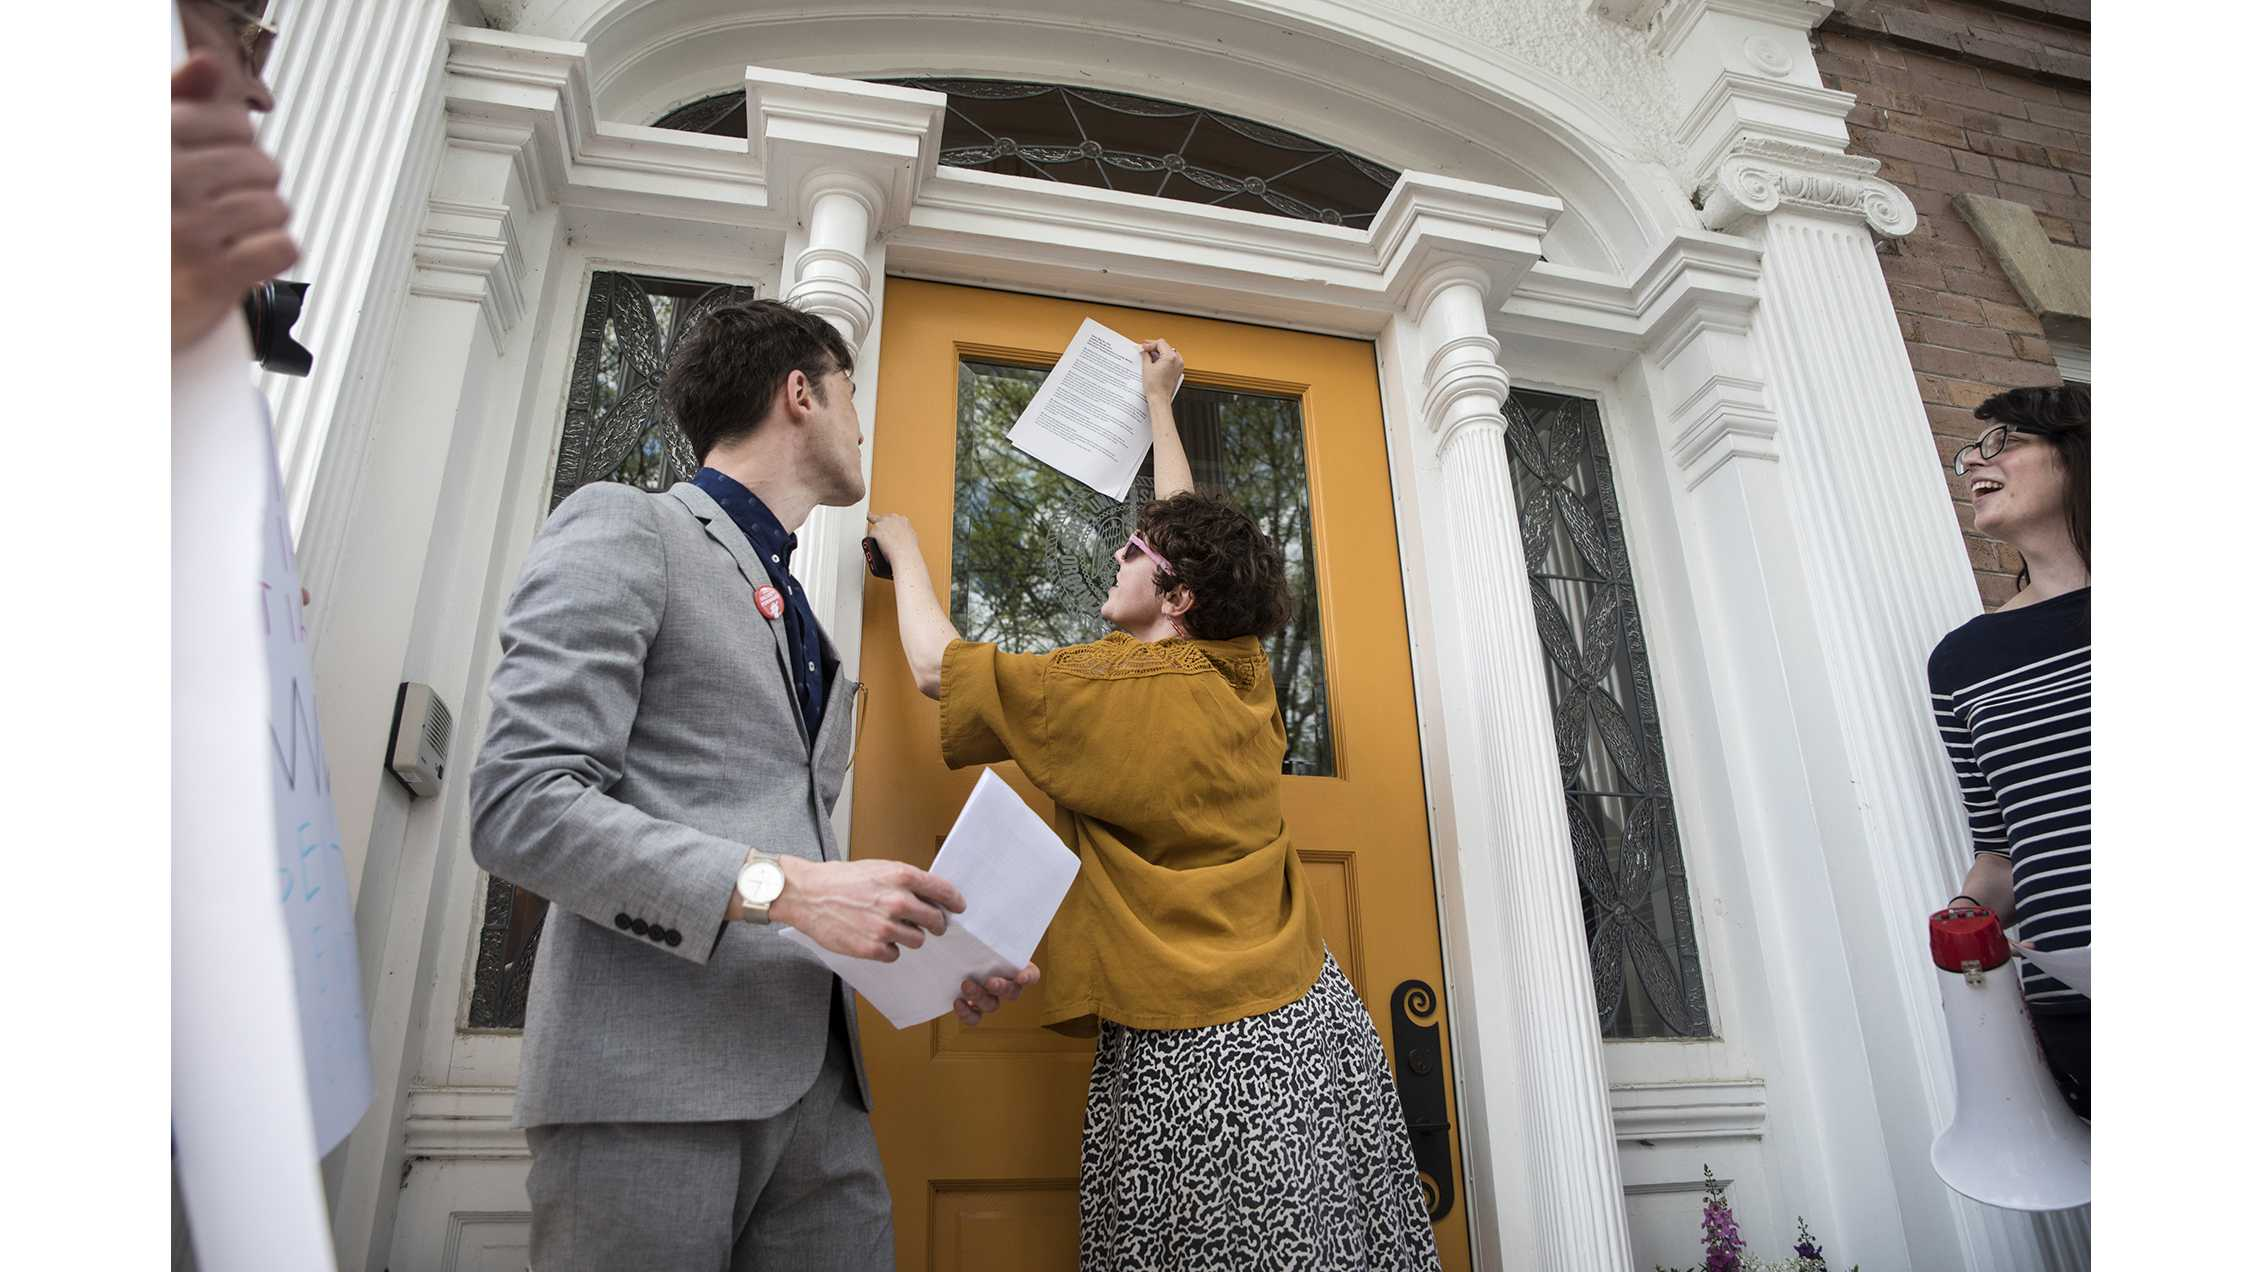 Meaghan Harding tapes a letter to the door of Bruce Harreld's home on May 4, 2018. UI's non-tenured faculty—grown to 52% since 2011—advocated for greater job security, fair pay, and benefits. (Olivia Sun/The Daily Iowan)